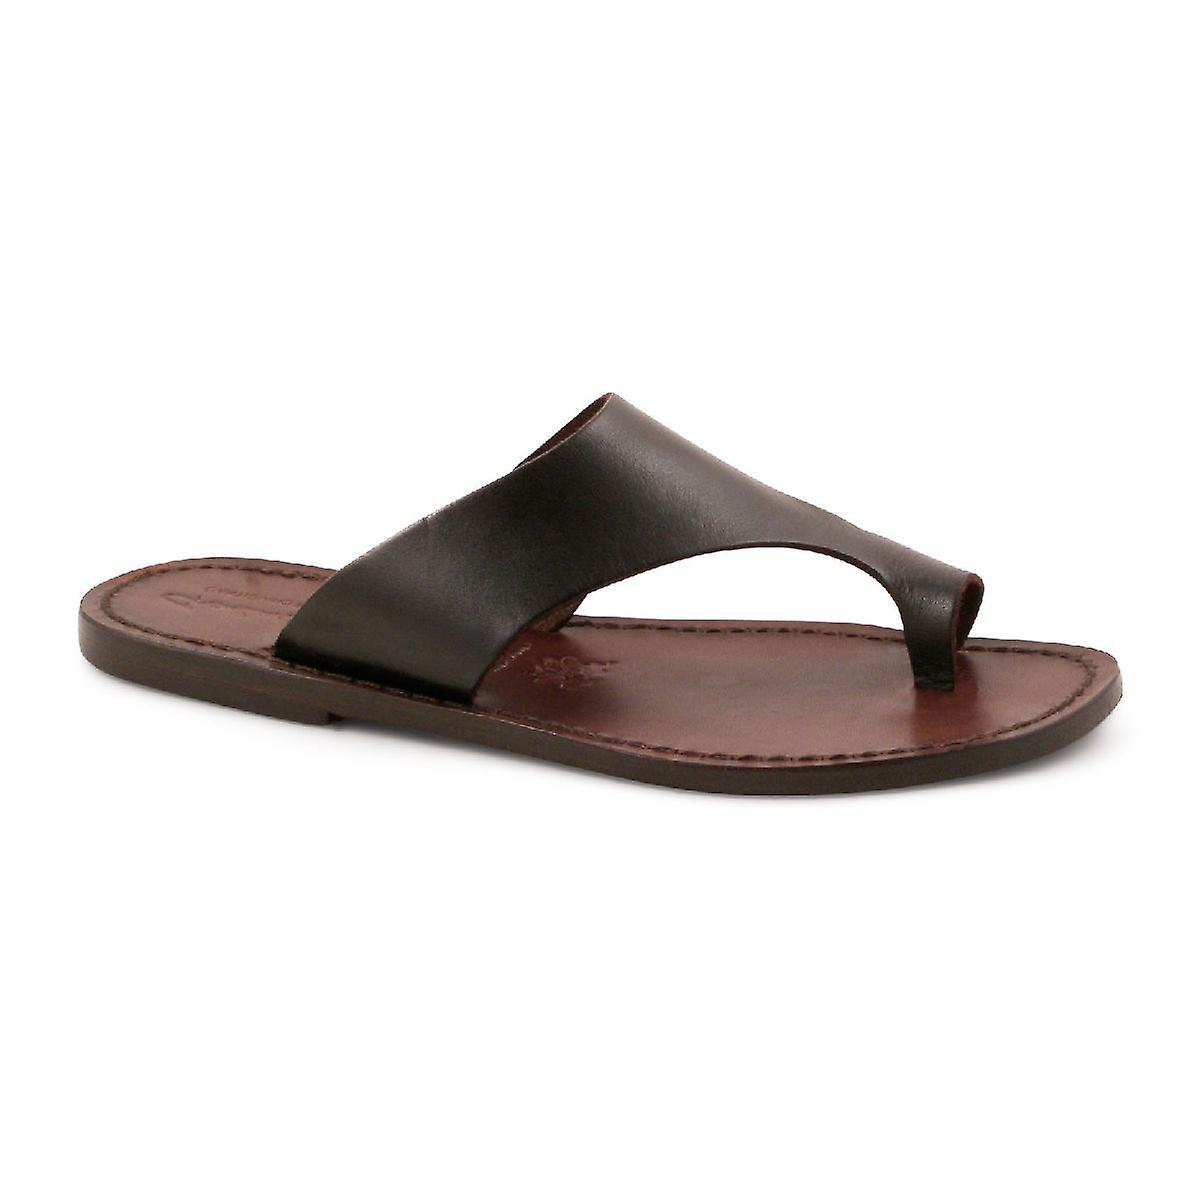 b4508a8074c6ee Brown leather thong sandals for women handmade